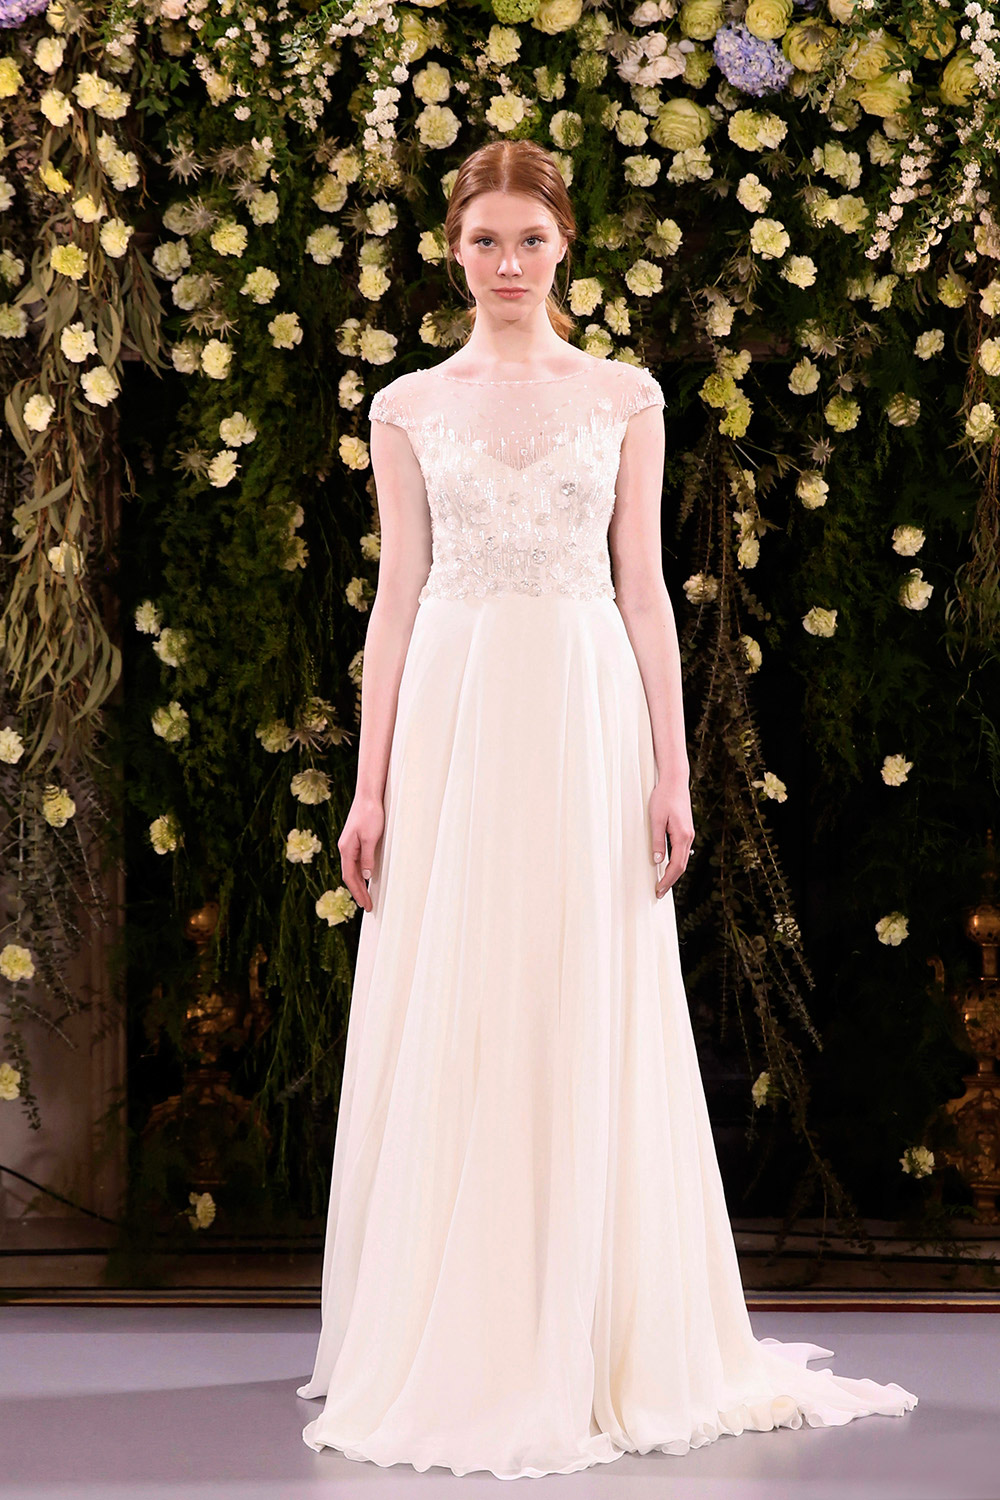 Sylvia – Jenny Packham 2019 Bridal Collection. www.theweddingnotebook.com